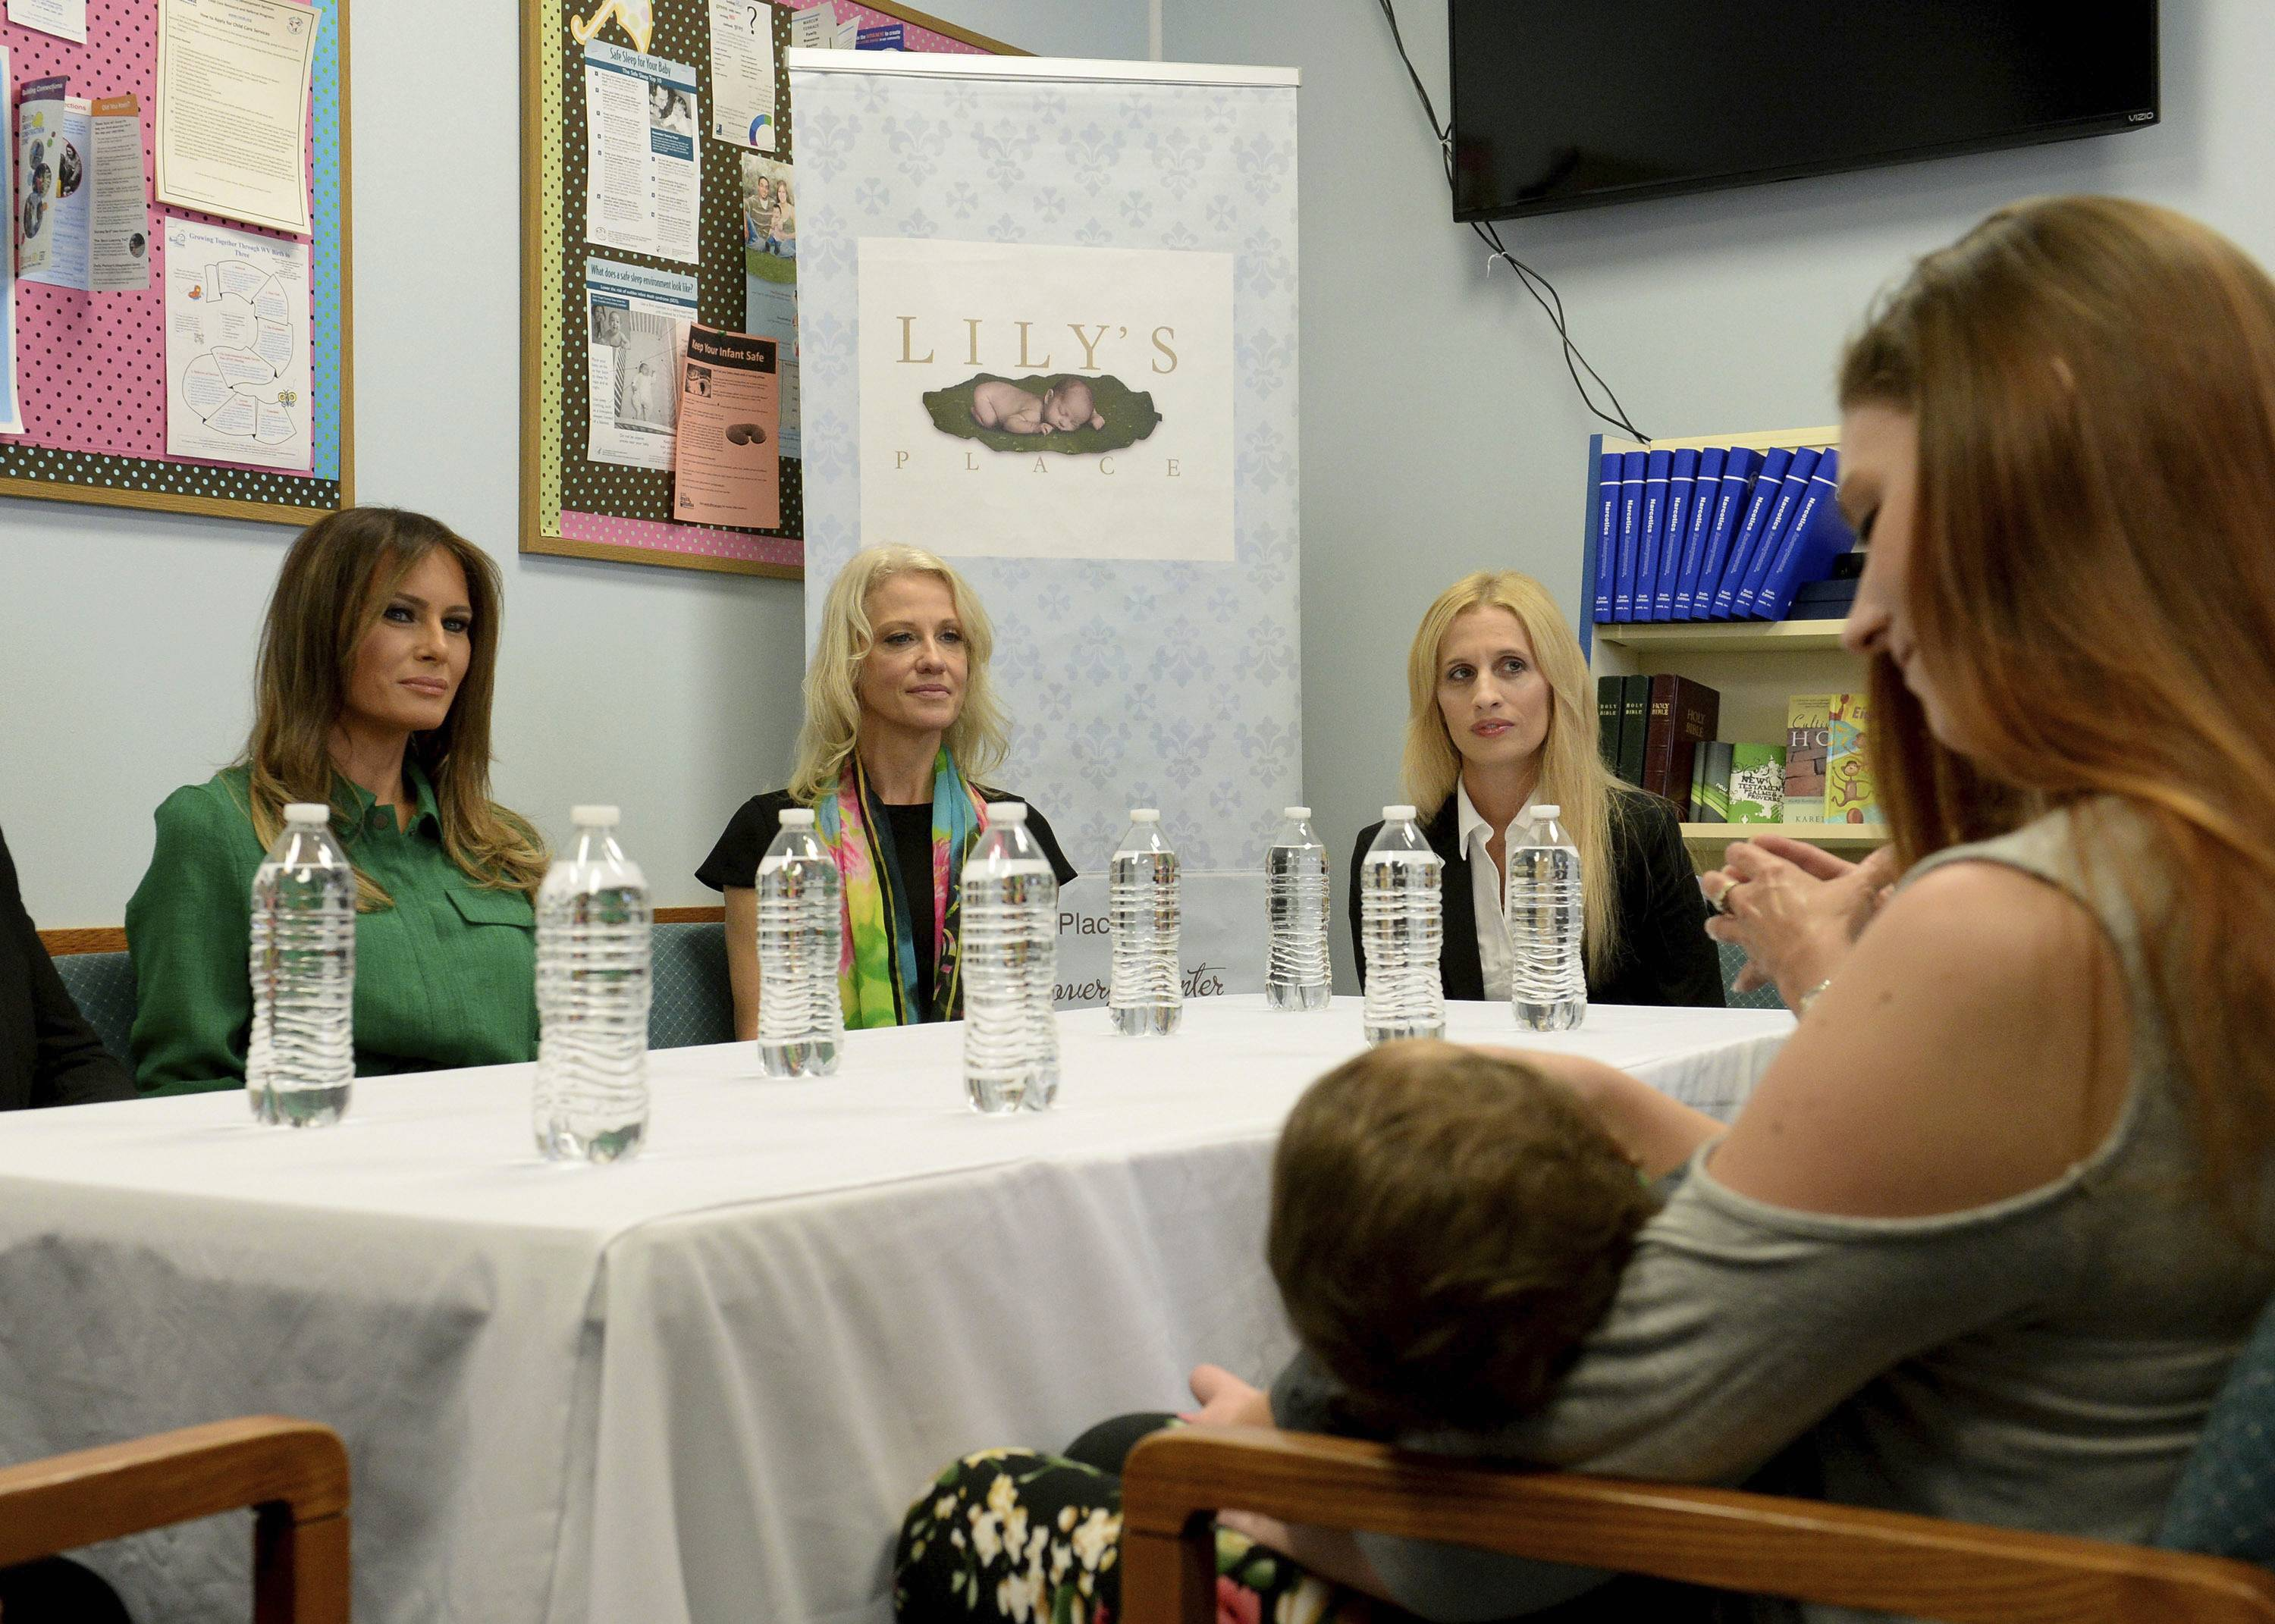 First lady Melania Trump, left, participates in a roundtable discussion Tuesday at Lily's Place in Huntington, West Virginia. Lily's Place is the nation's first nonprofit infant addiction recovery center.